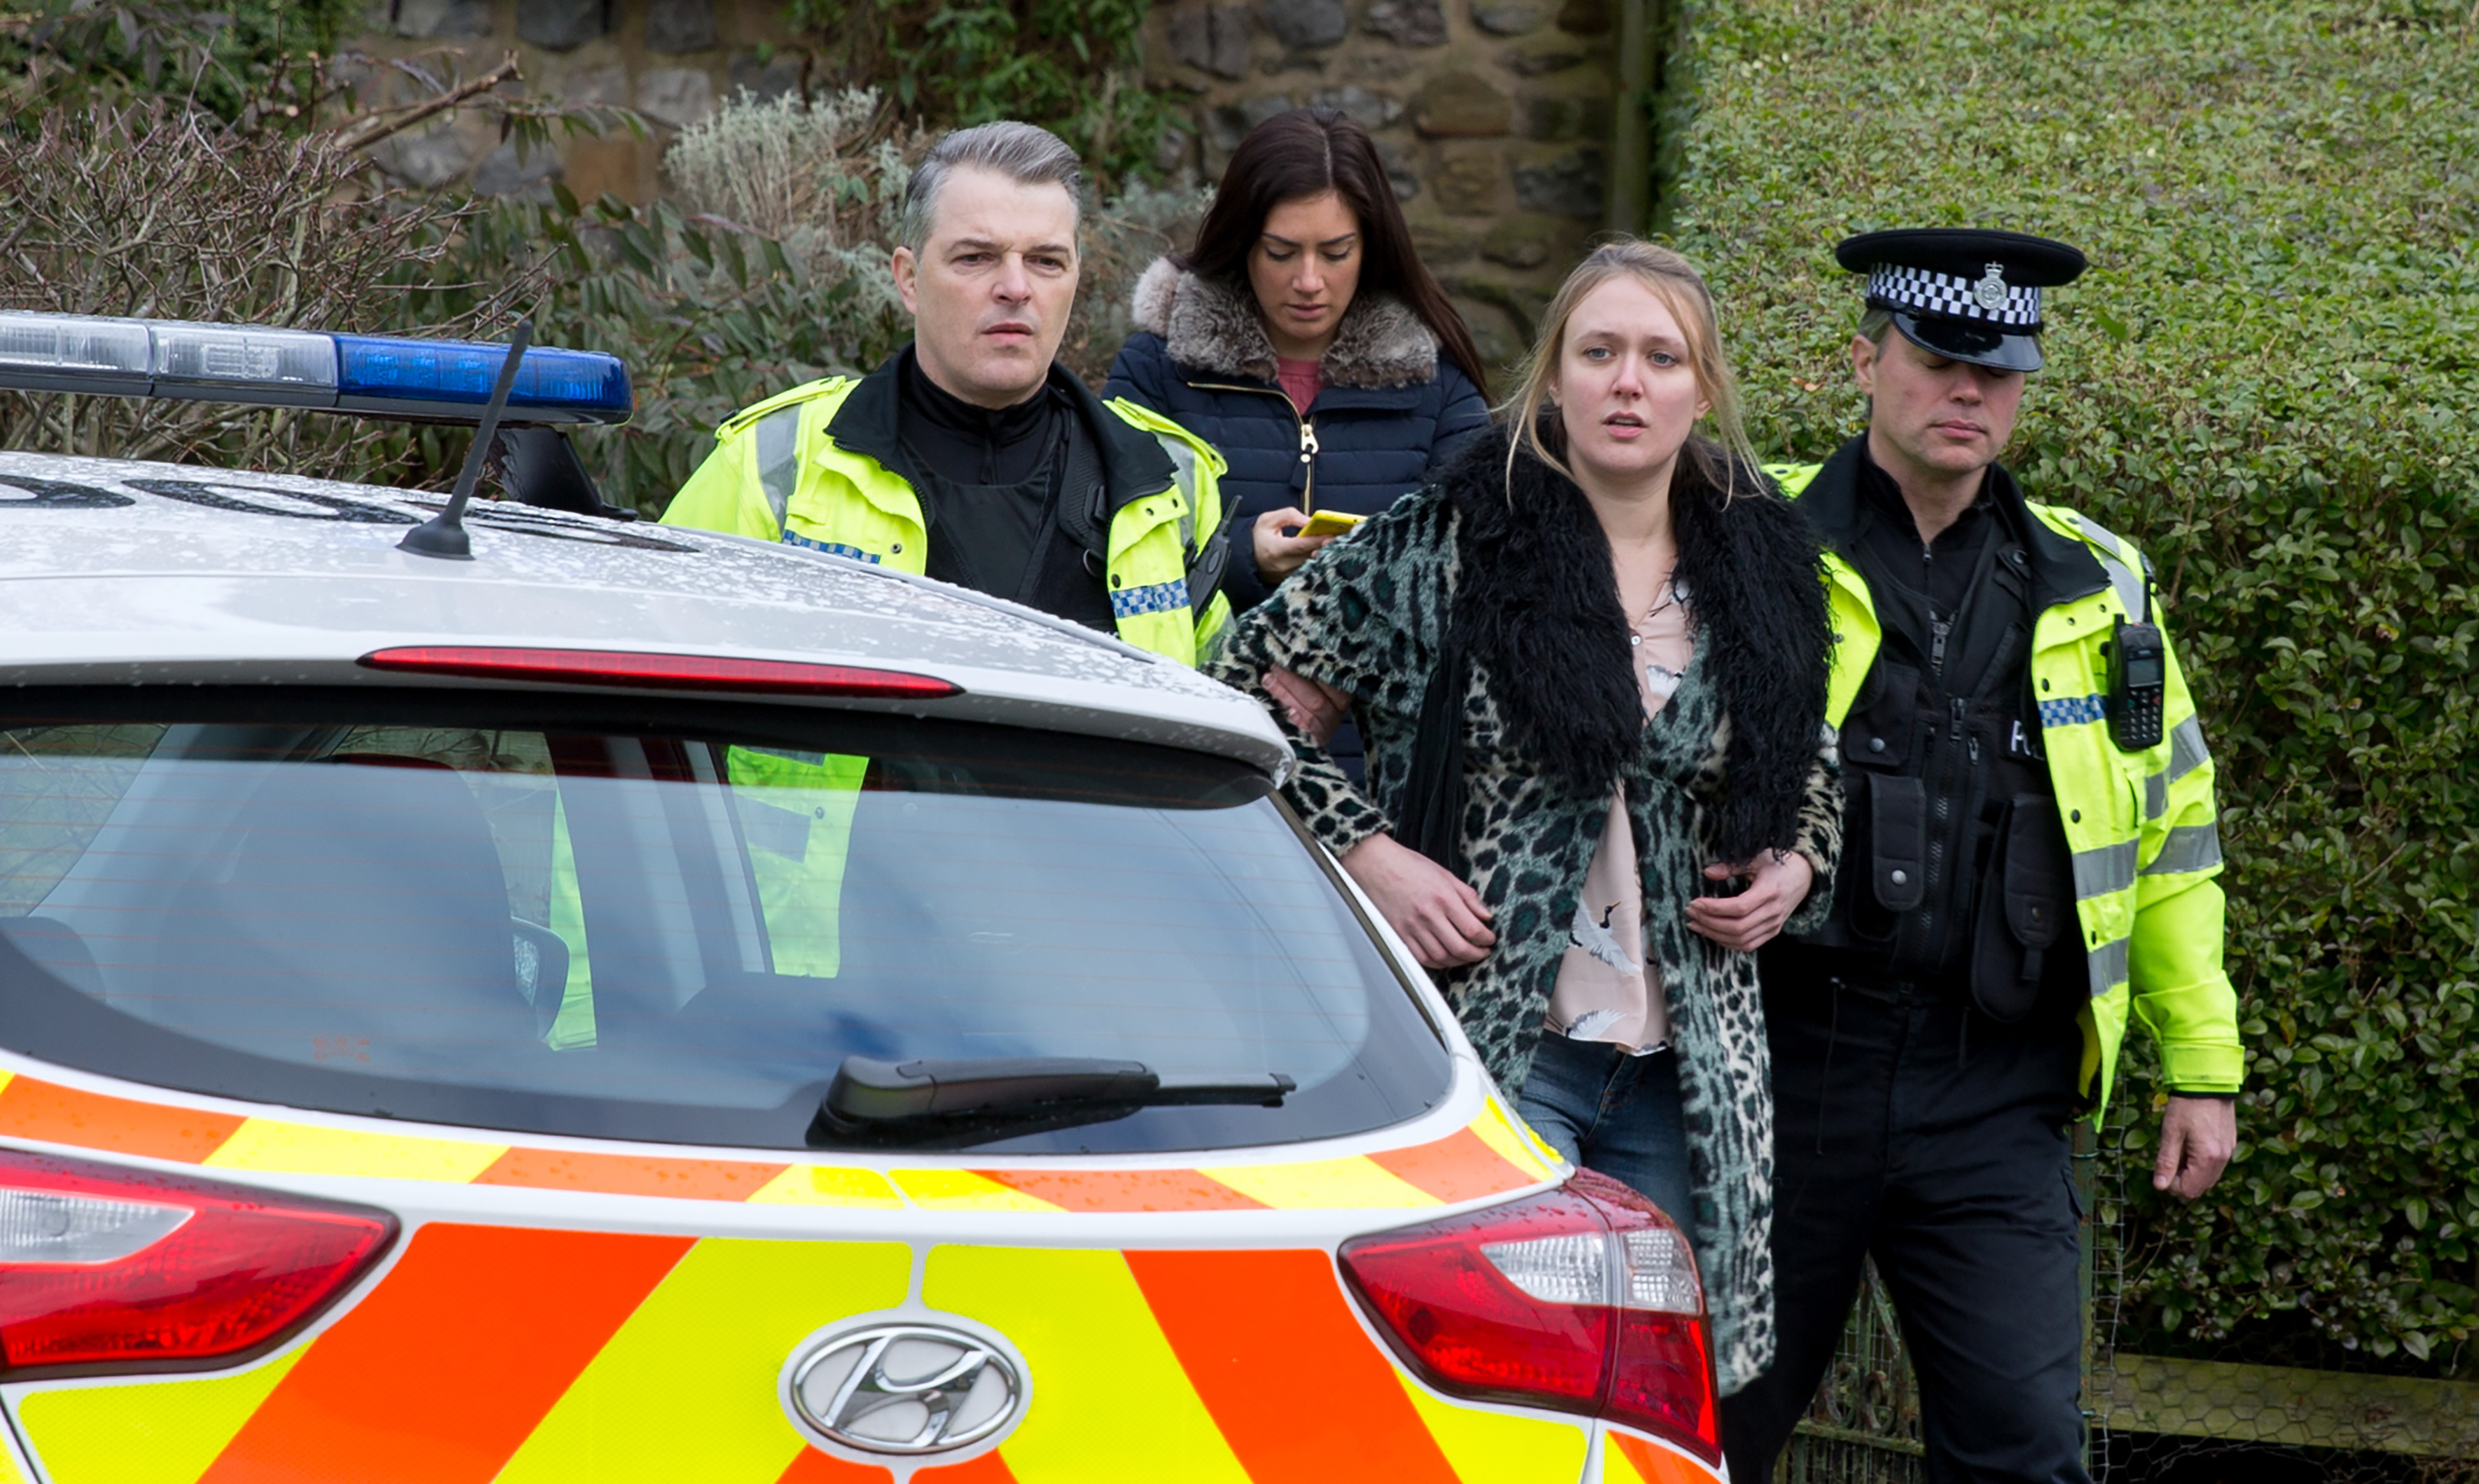 FROM ITV   STRICT EMBARGO  Print media - No Use Before Tuesday 27 February 2018 Online Media -  No Use Before 0700hrs Tuesday 27 February 2018  Emmerdale - Ep 8091  Friday 9th March 2018   The police arrive to arrest Rebecca White [EMILY HEAD] for burglary and attempted assault at Home Farm.   Picture contact - david.crook@itv.com  Photographer - Amy Brammall  This photograph is (C) ITV Plc and can only be reproduced for editorial purposes directly in connection with the programme or event mentioned above, or ITV plc. Once made available by ITV plc Picture Desk, this photograph can be reproduced once only up until the transmission [TX] date and no reproduction fee will be charged. Any subsequent usage may incur a fee. This photograph must not be manipulated [excluding basic cropping] in a manner which alters the visual appearance of the person photographed deemed detrimental or inappropriate by ITV plc Picture Desk. This photograph must not be syndicated to any other company, publication or website, or permanently archived, without the express written permission of ITV Plc Picture Desk. Full Terms and conditions are available on the website www.itvpictures.com